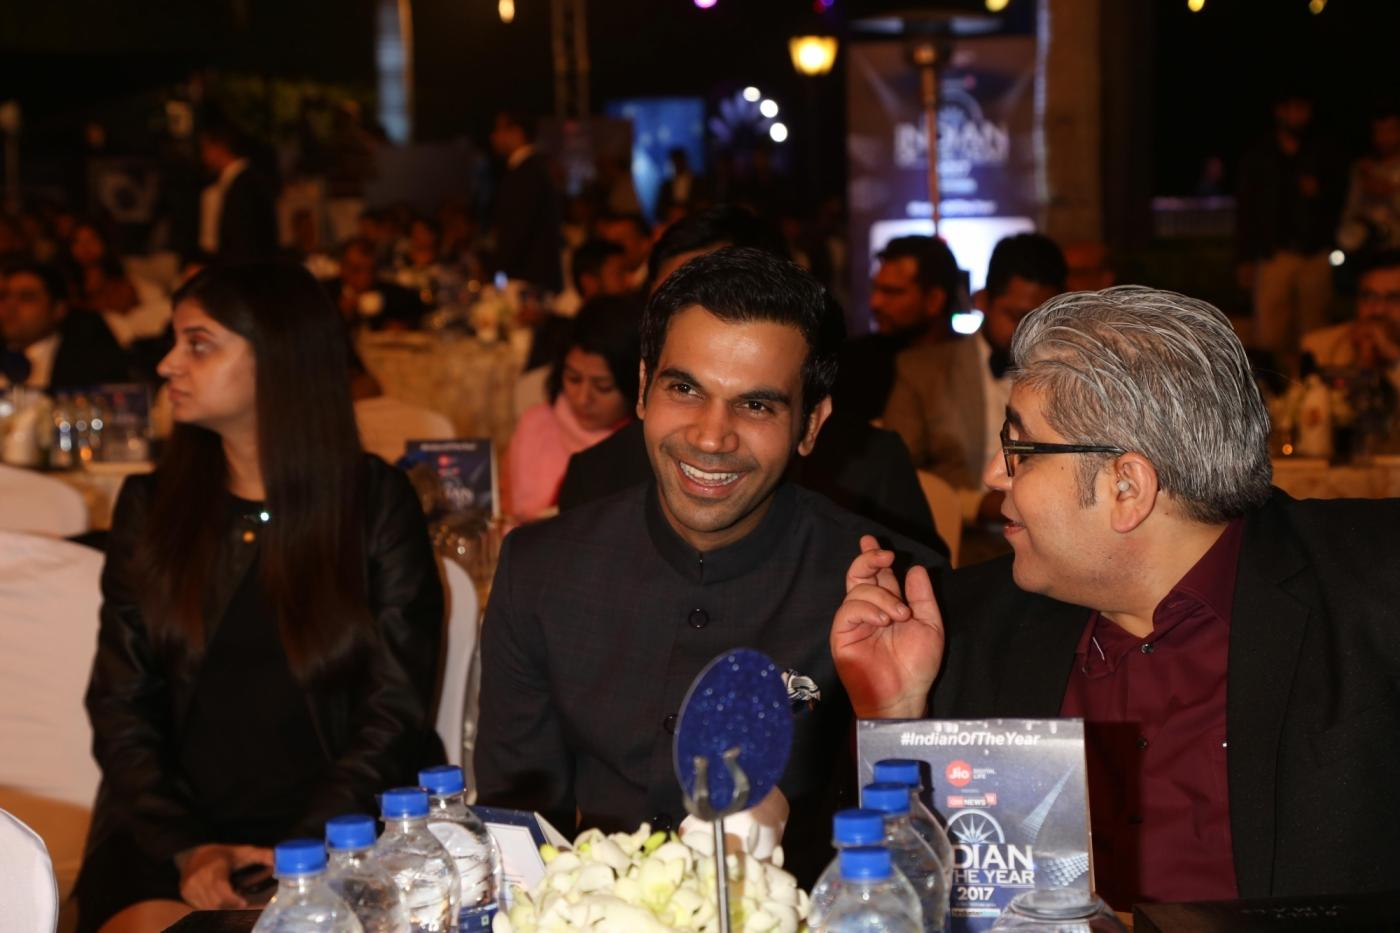 New Delhi: Actor Rajkummar Rao during Indian of the Year 2017 award ceremony hosted by CNN News 18 in New Delhi, on Nov 30, 2017. Best actor award goes to Rajkumar Rao. (Photo: Amlan Paliwal/IANS) by .